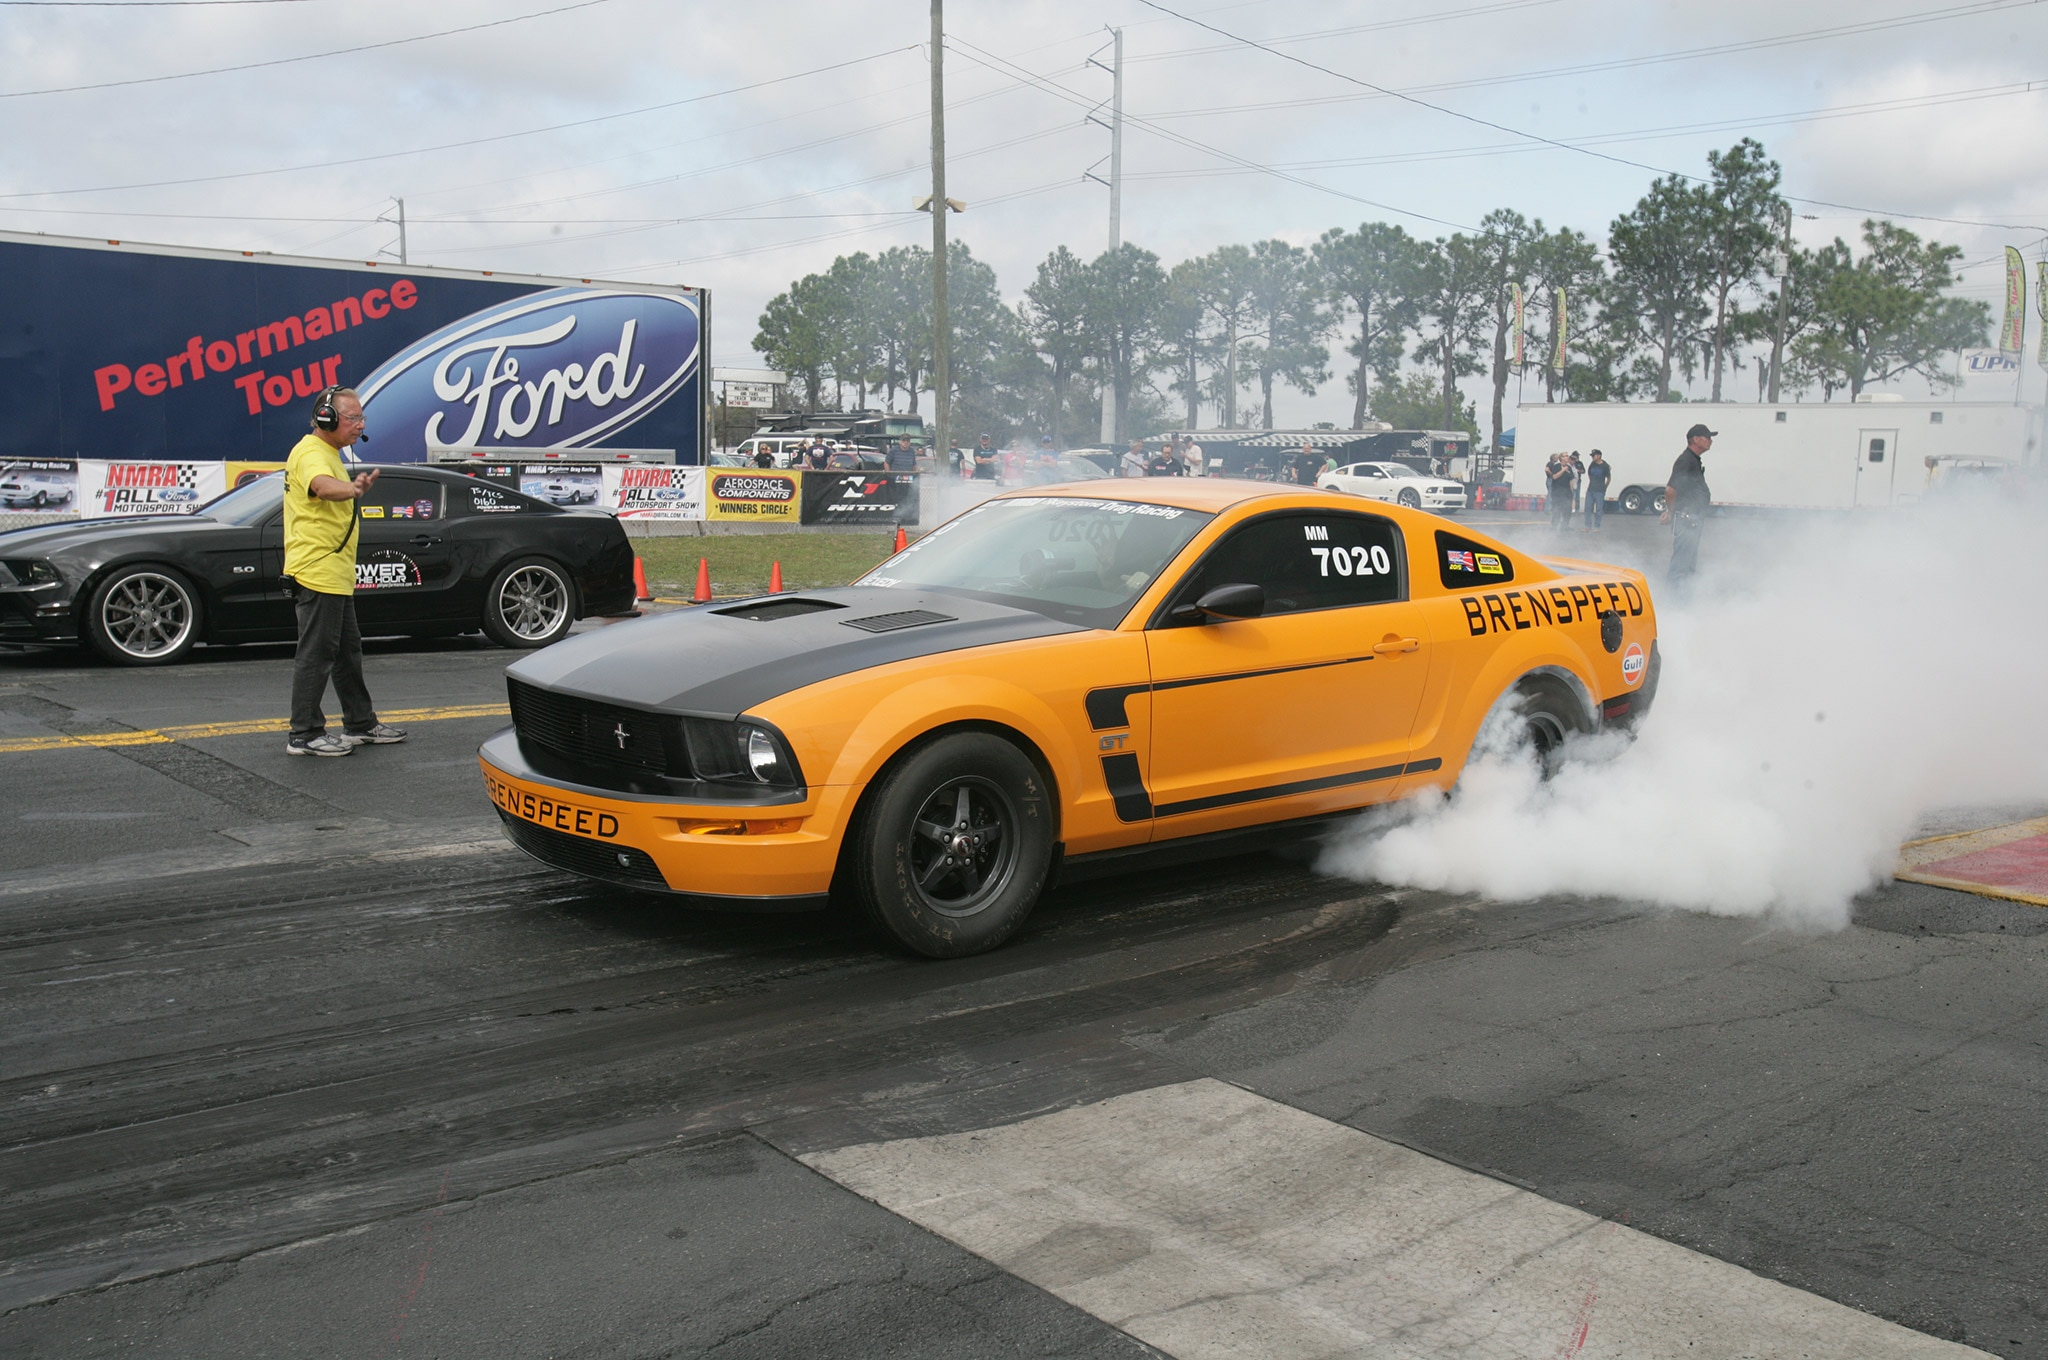 2015 Nmra Mustangs Burnout Brenspeed